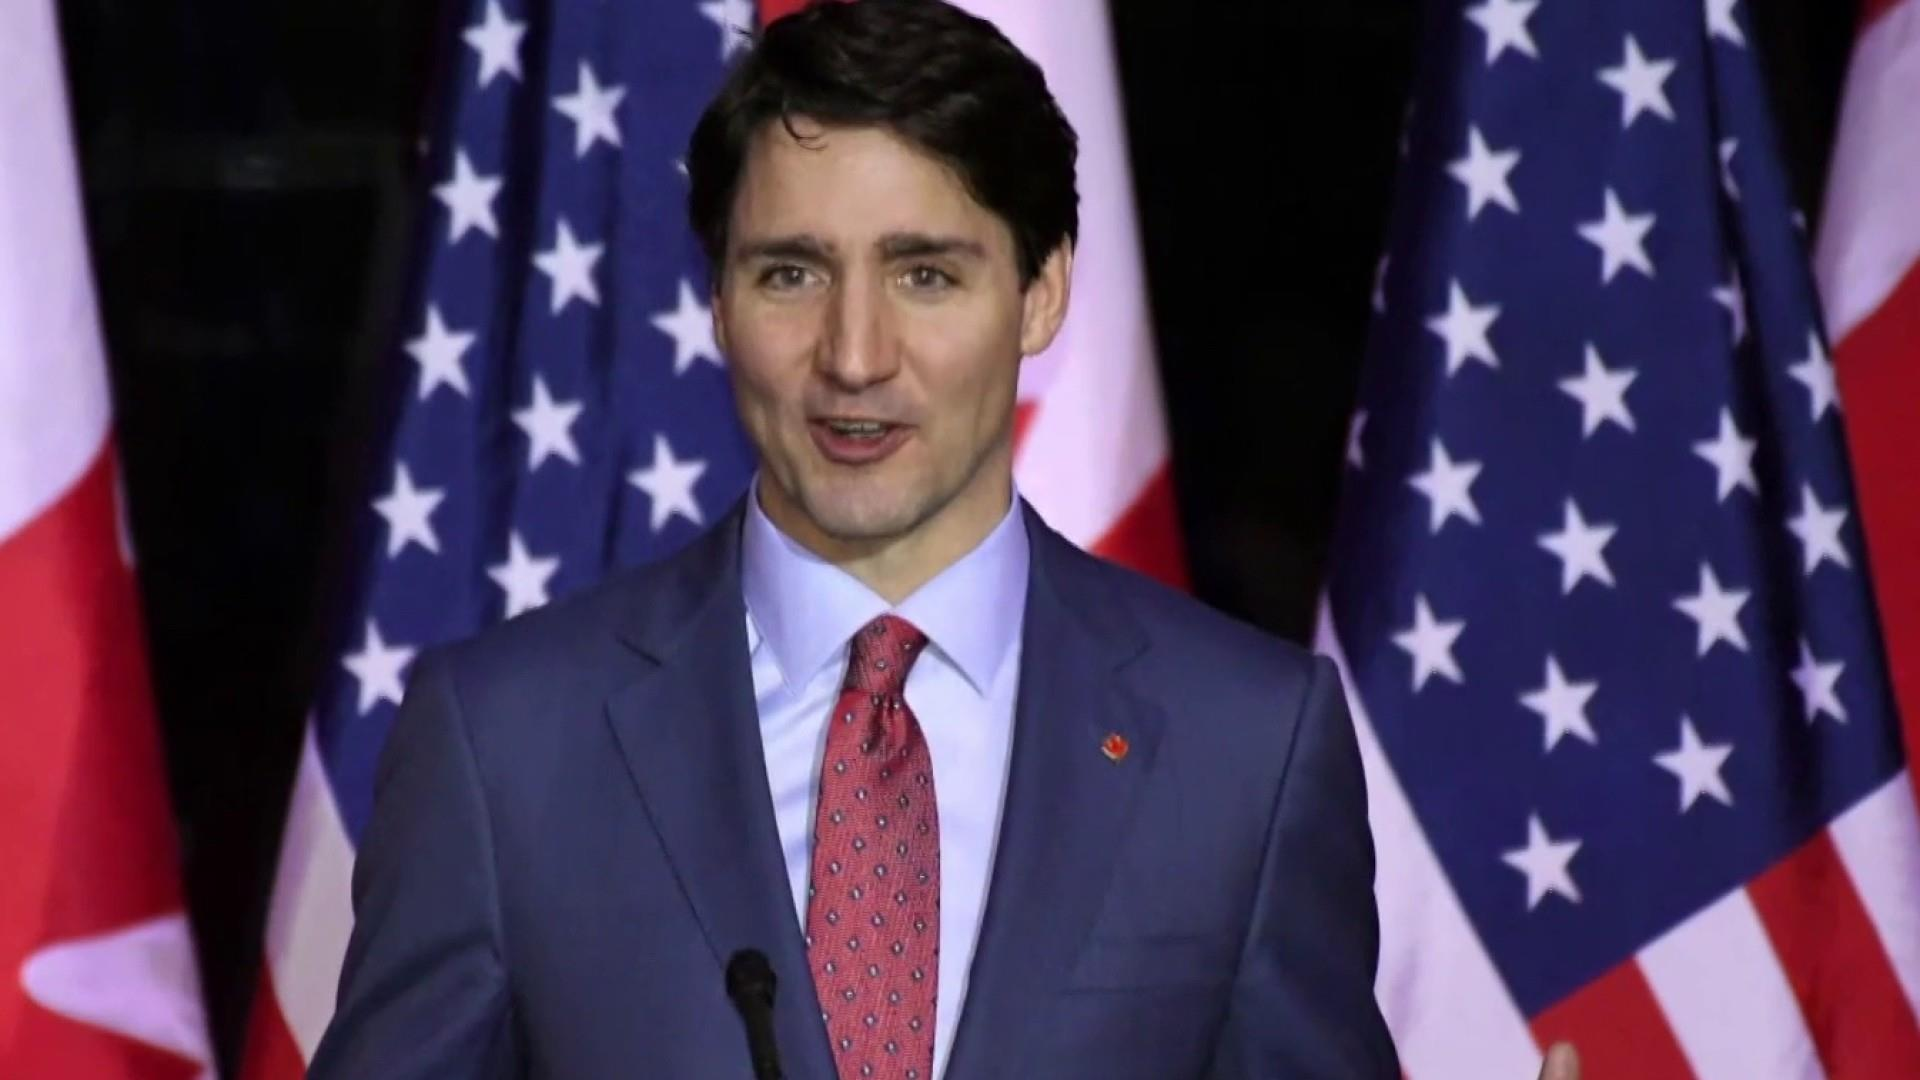 Canadian PM Trudeau embroiled in scandal